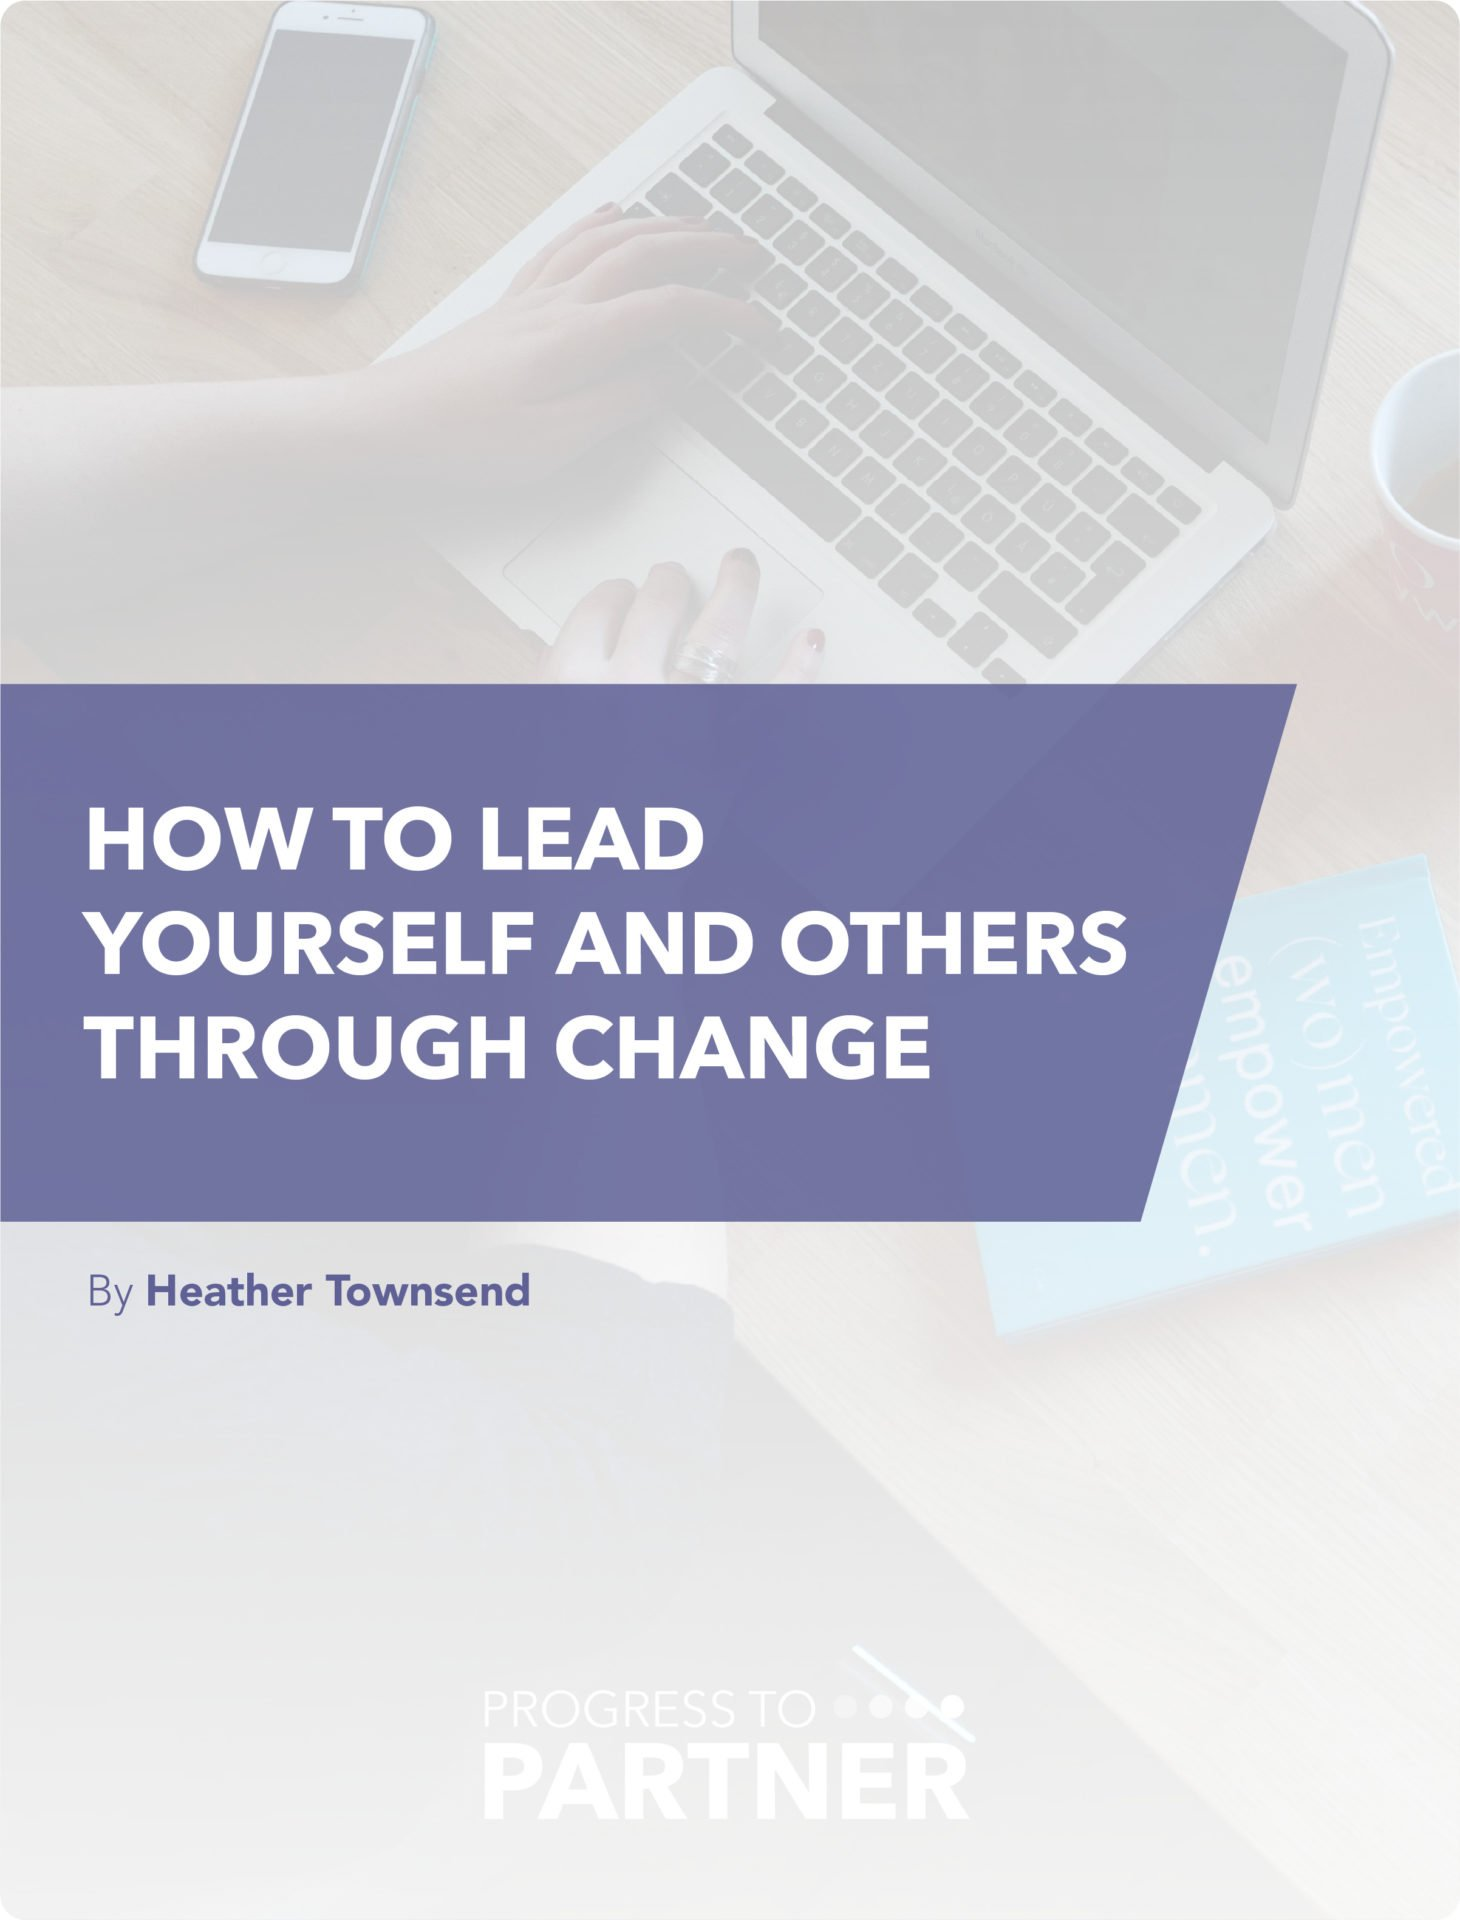 Leading yourself and others through change